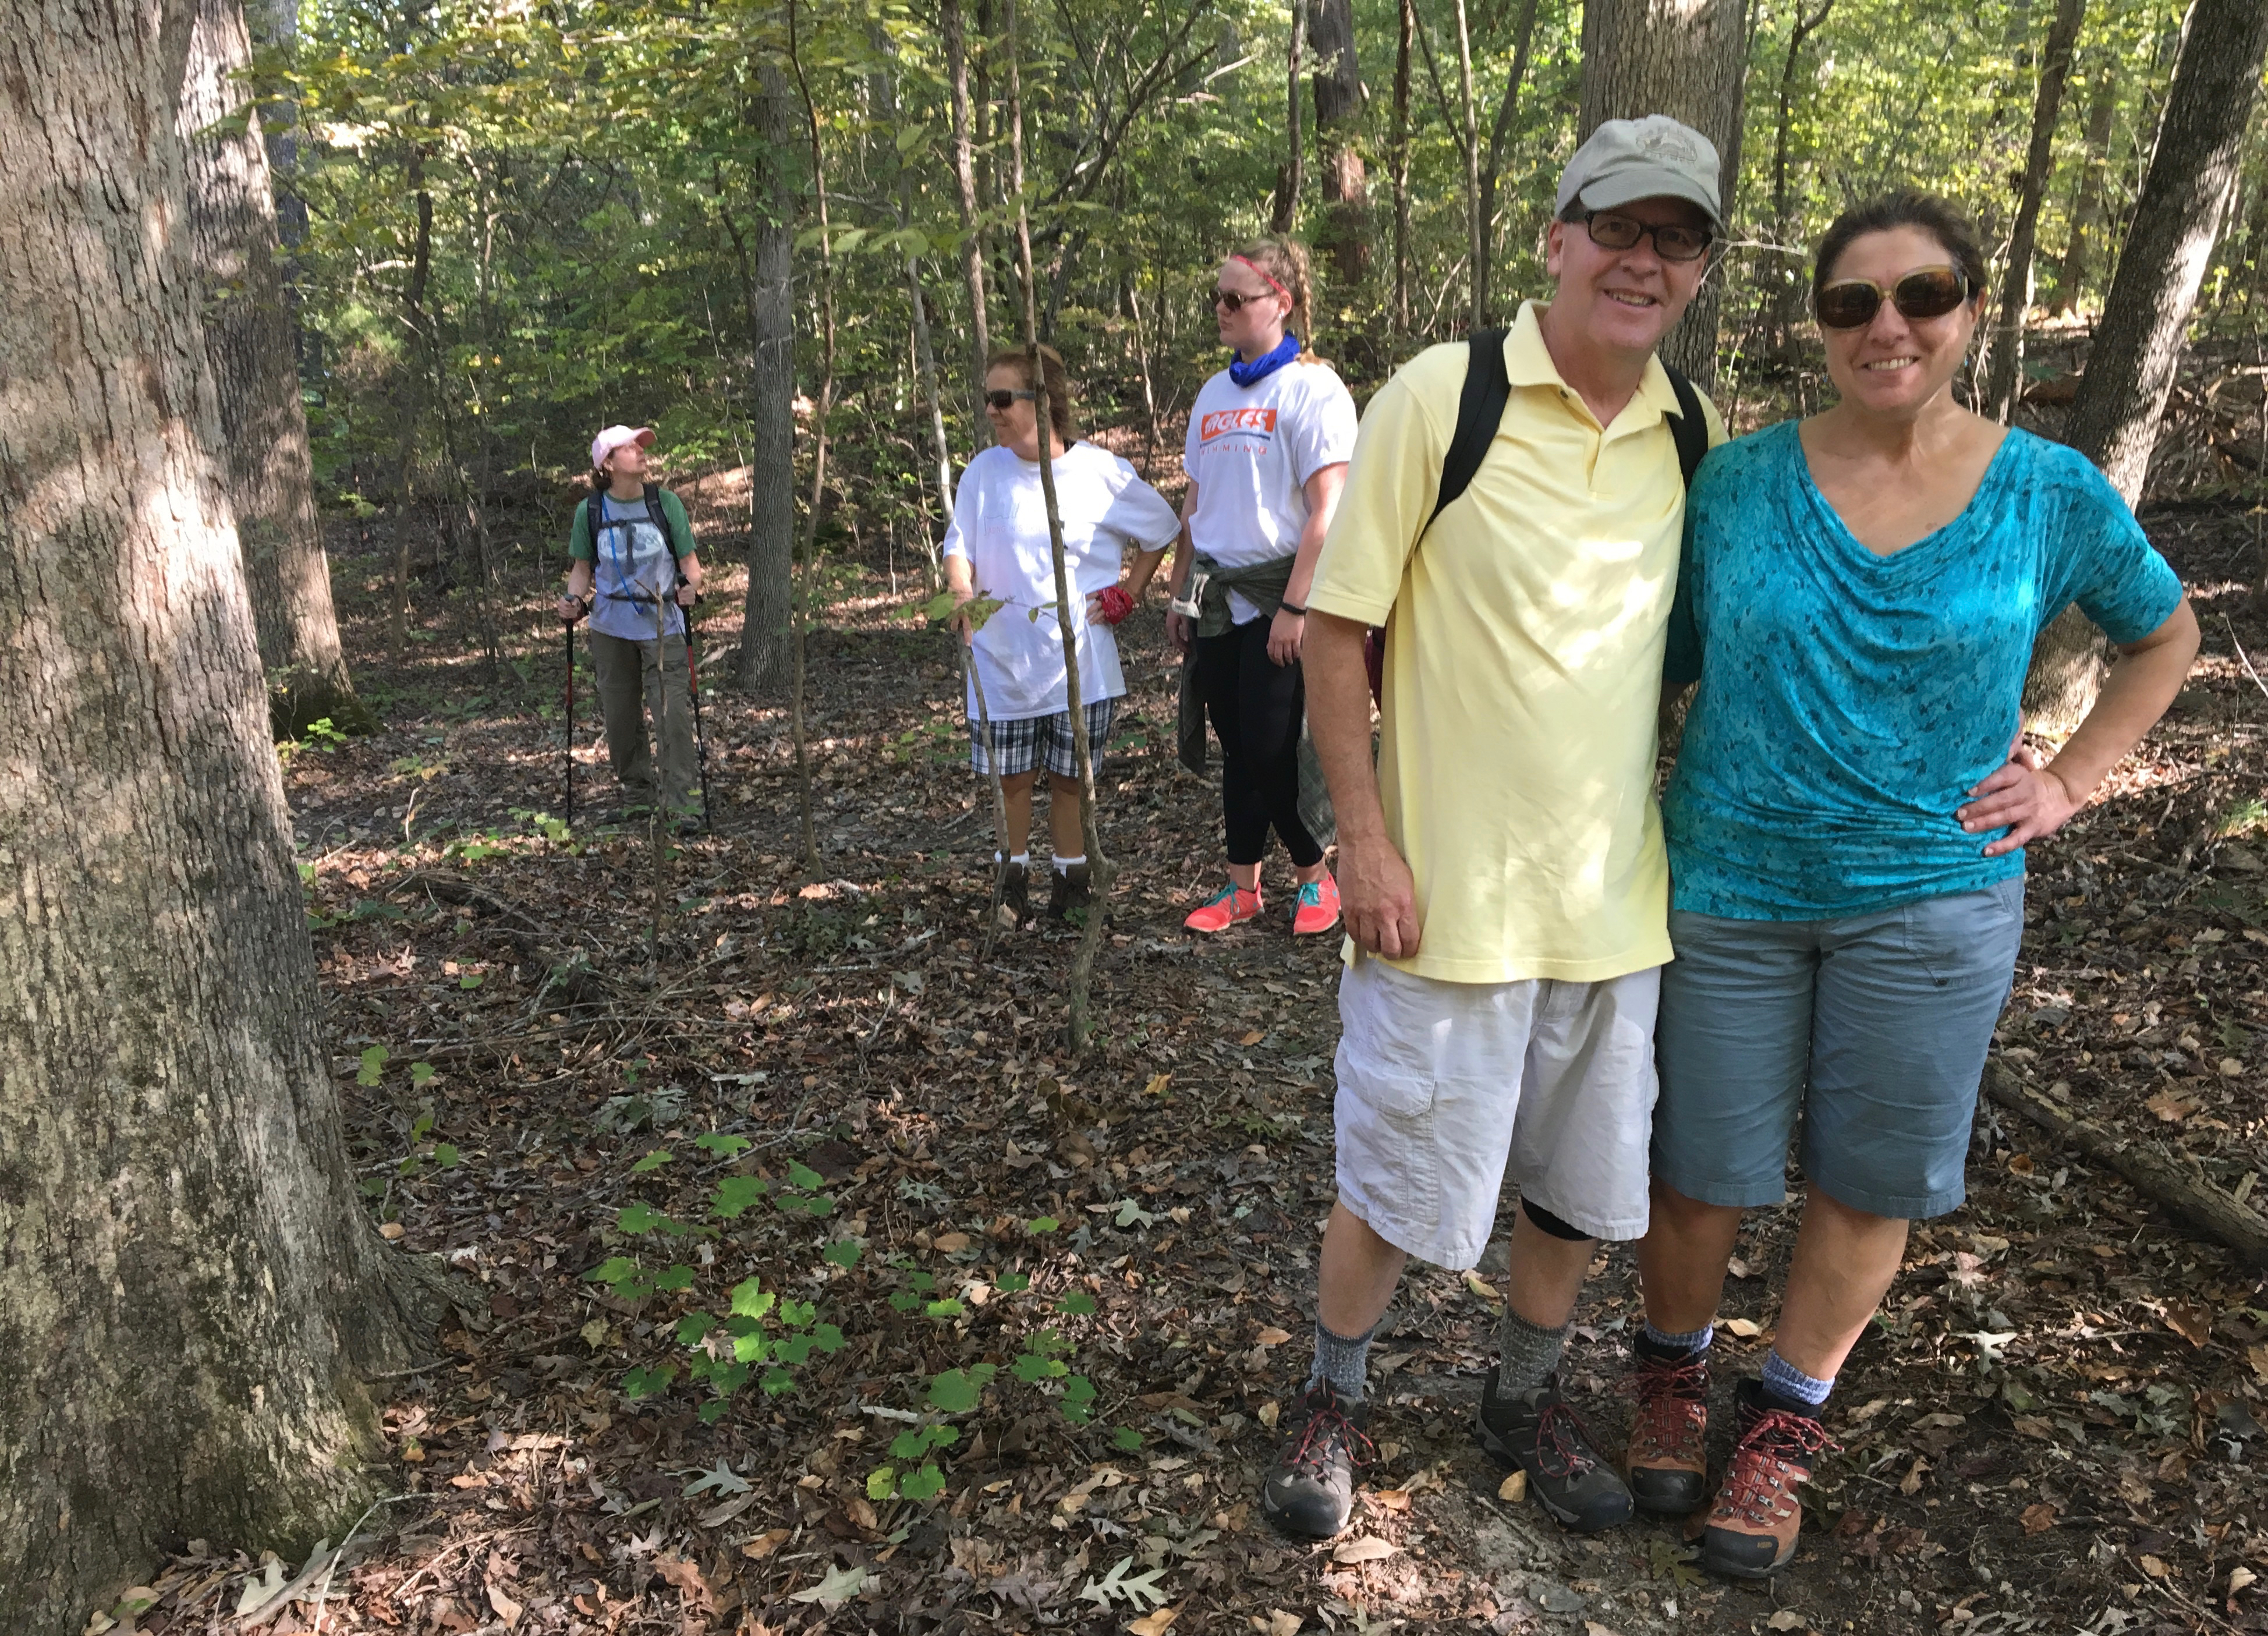 Steve Anderson, with his hiking muse, Maria Lanni